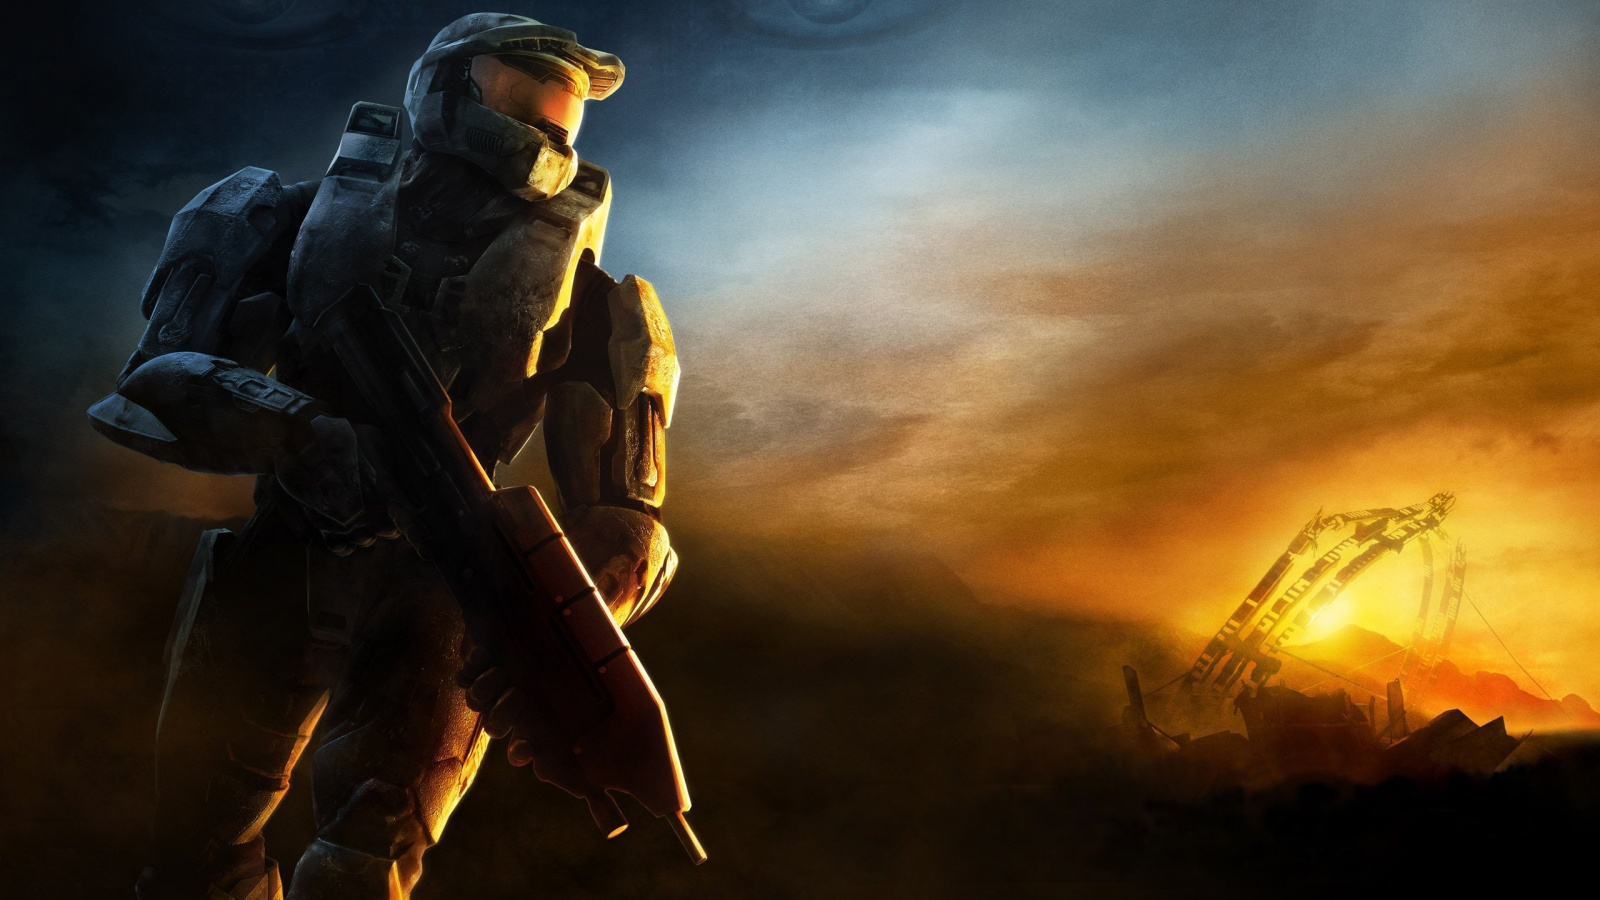 HALO 3 Game Wallpapers HD Wallpapers 1600x900